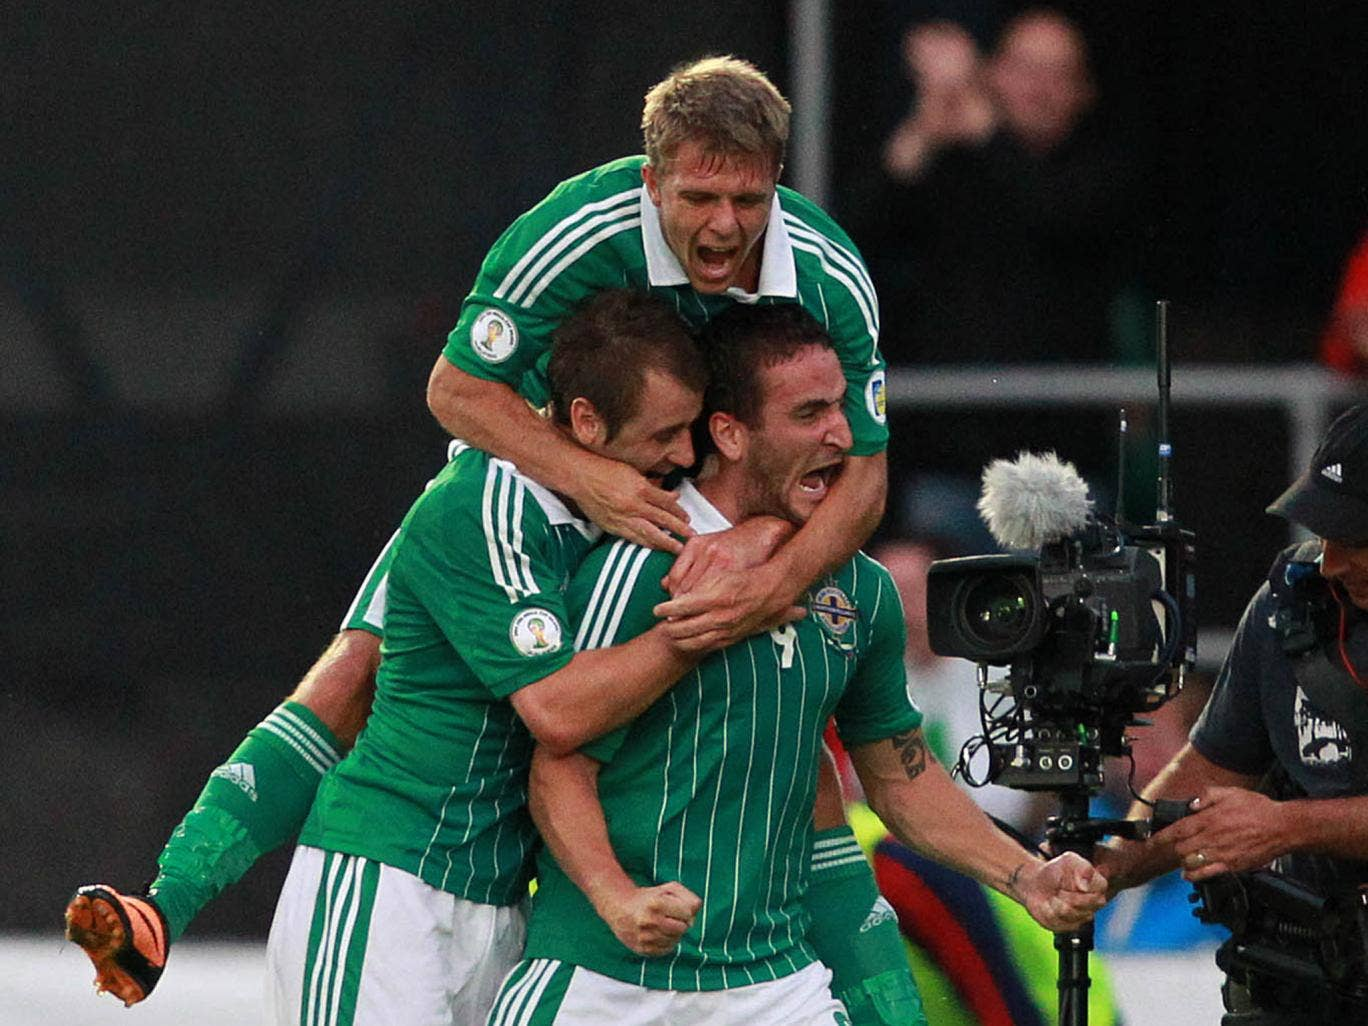 Northern Ireland's Martin Paterson (R) celebrates with team mates after scoring his team's first goal during the FIFA 2014 World Cup European zone group F qualifying football match between Russia and Northern Ireland